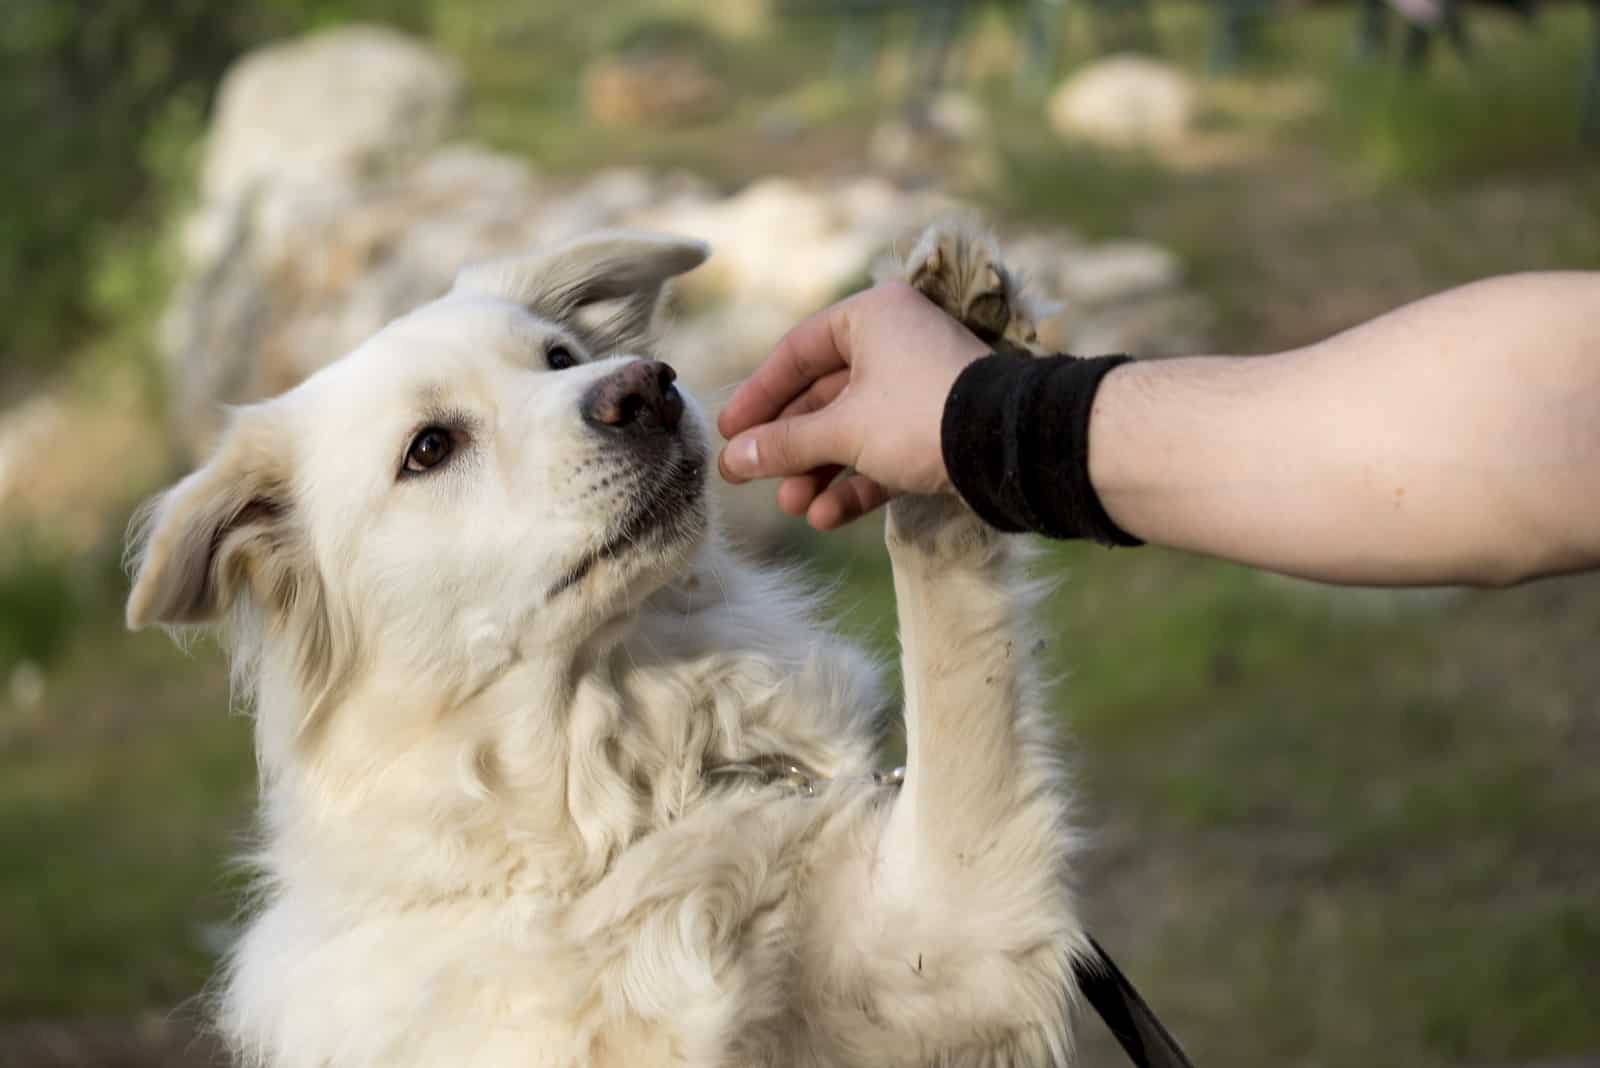 the dog eats a snack from the person's hand